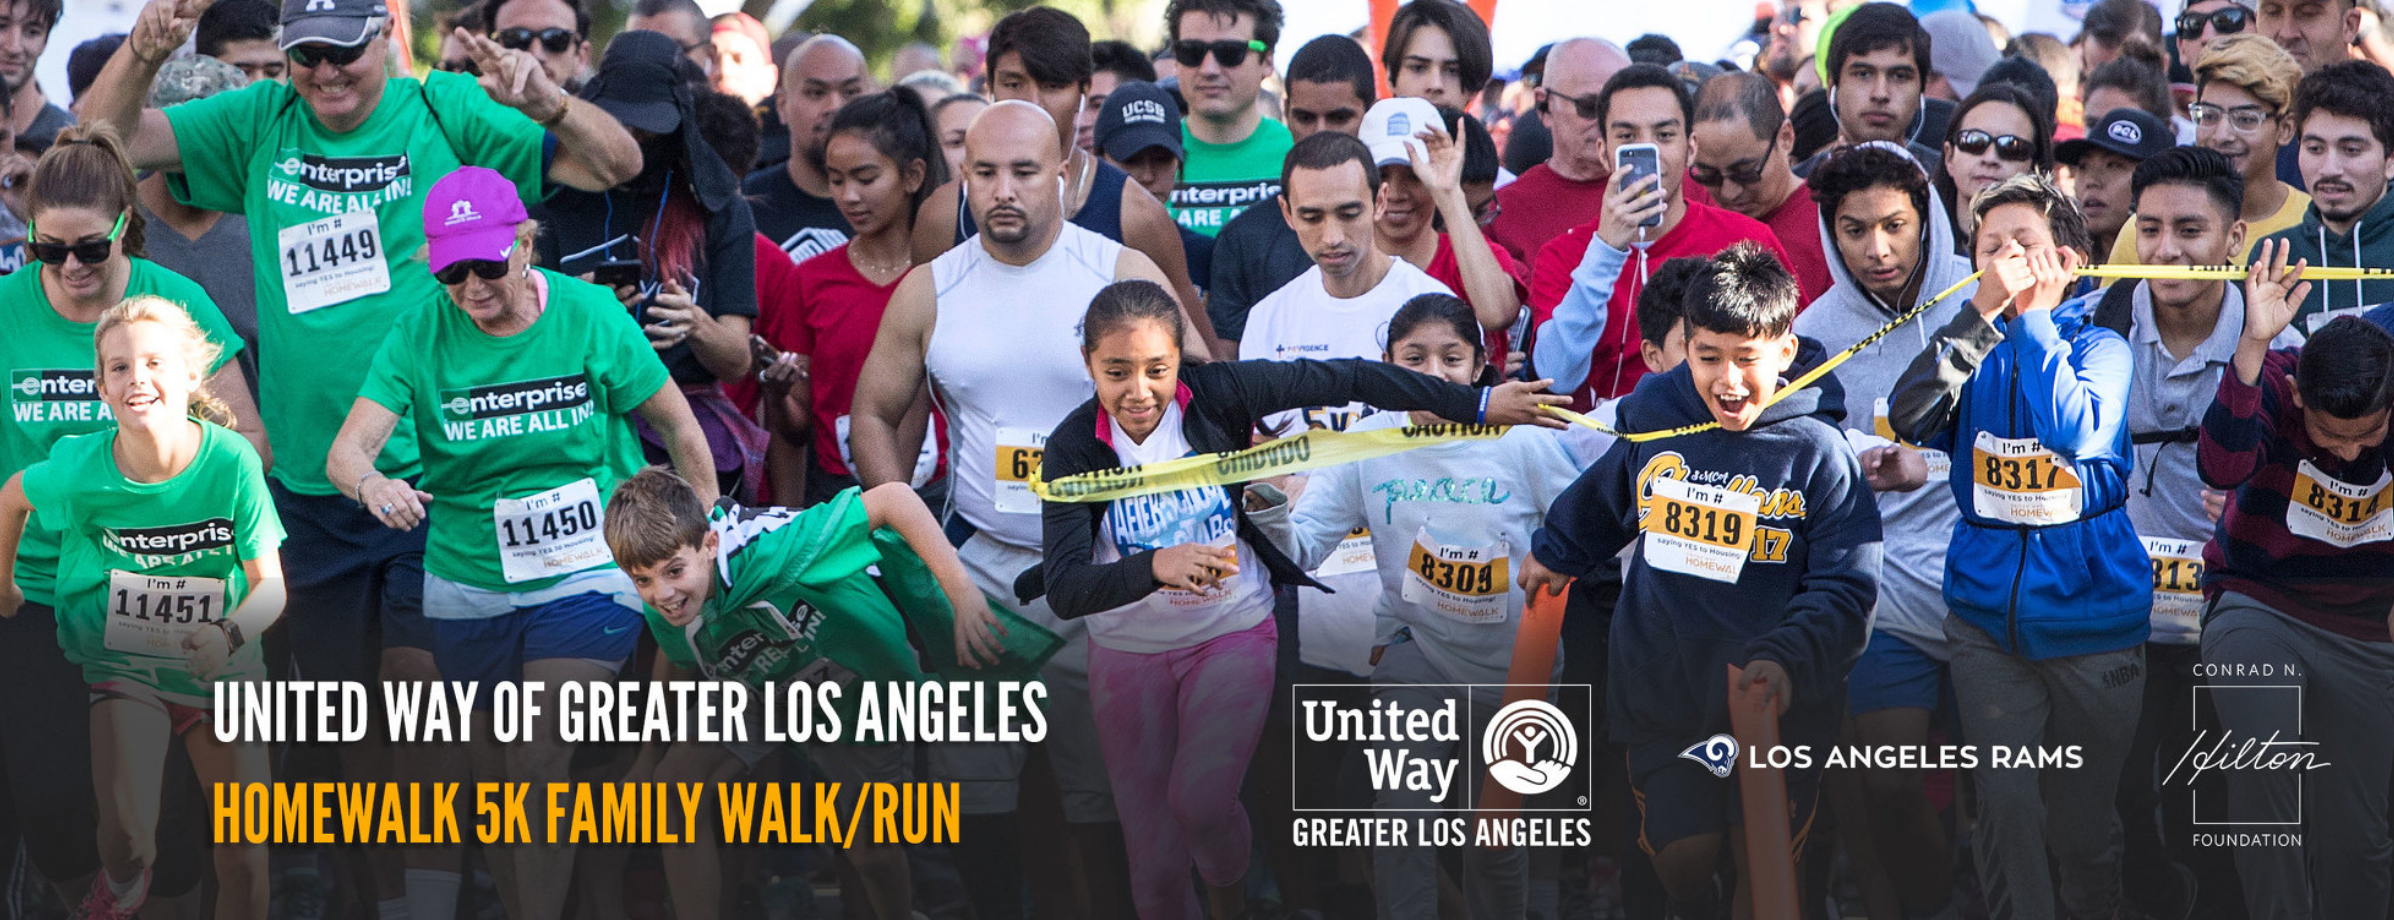 Captured from the United Way of Greater Los Angeles web page.